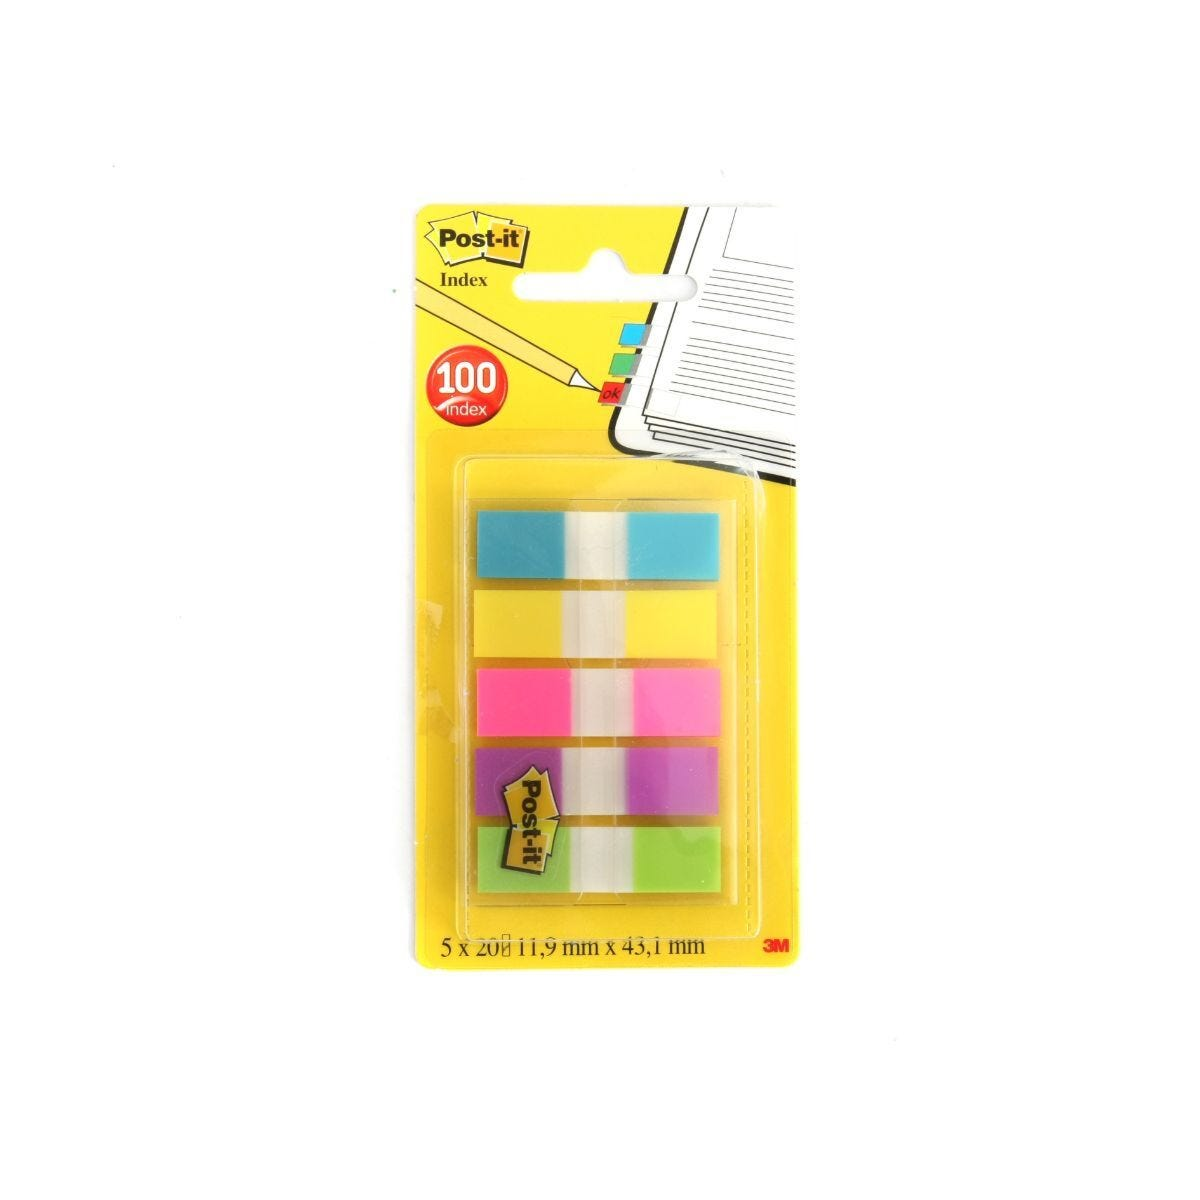 3M Post It File Index Tabs 43x12mm 100 Sheets